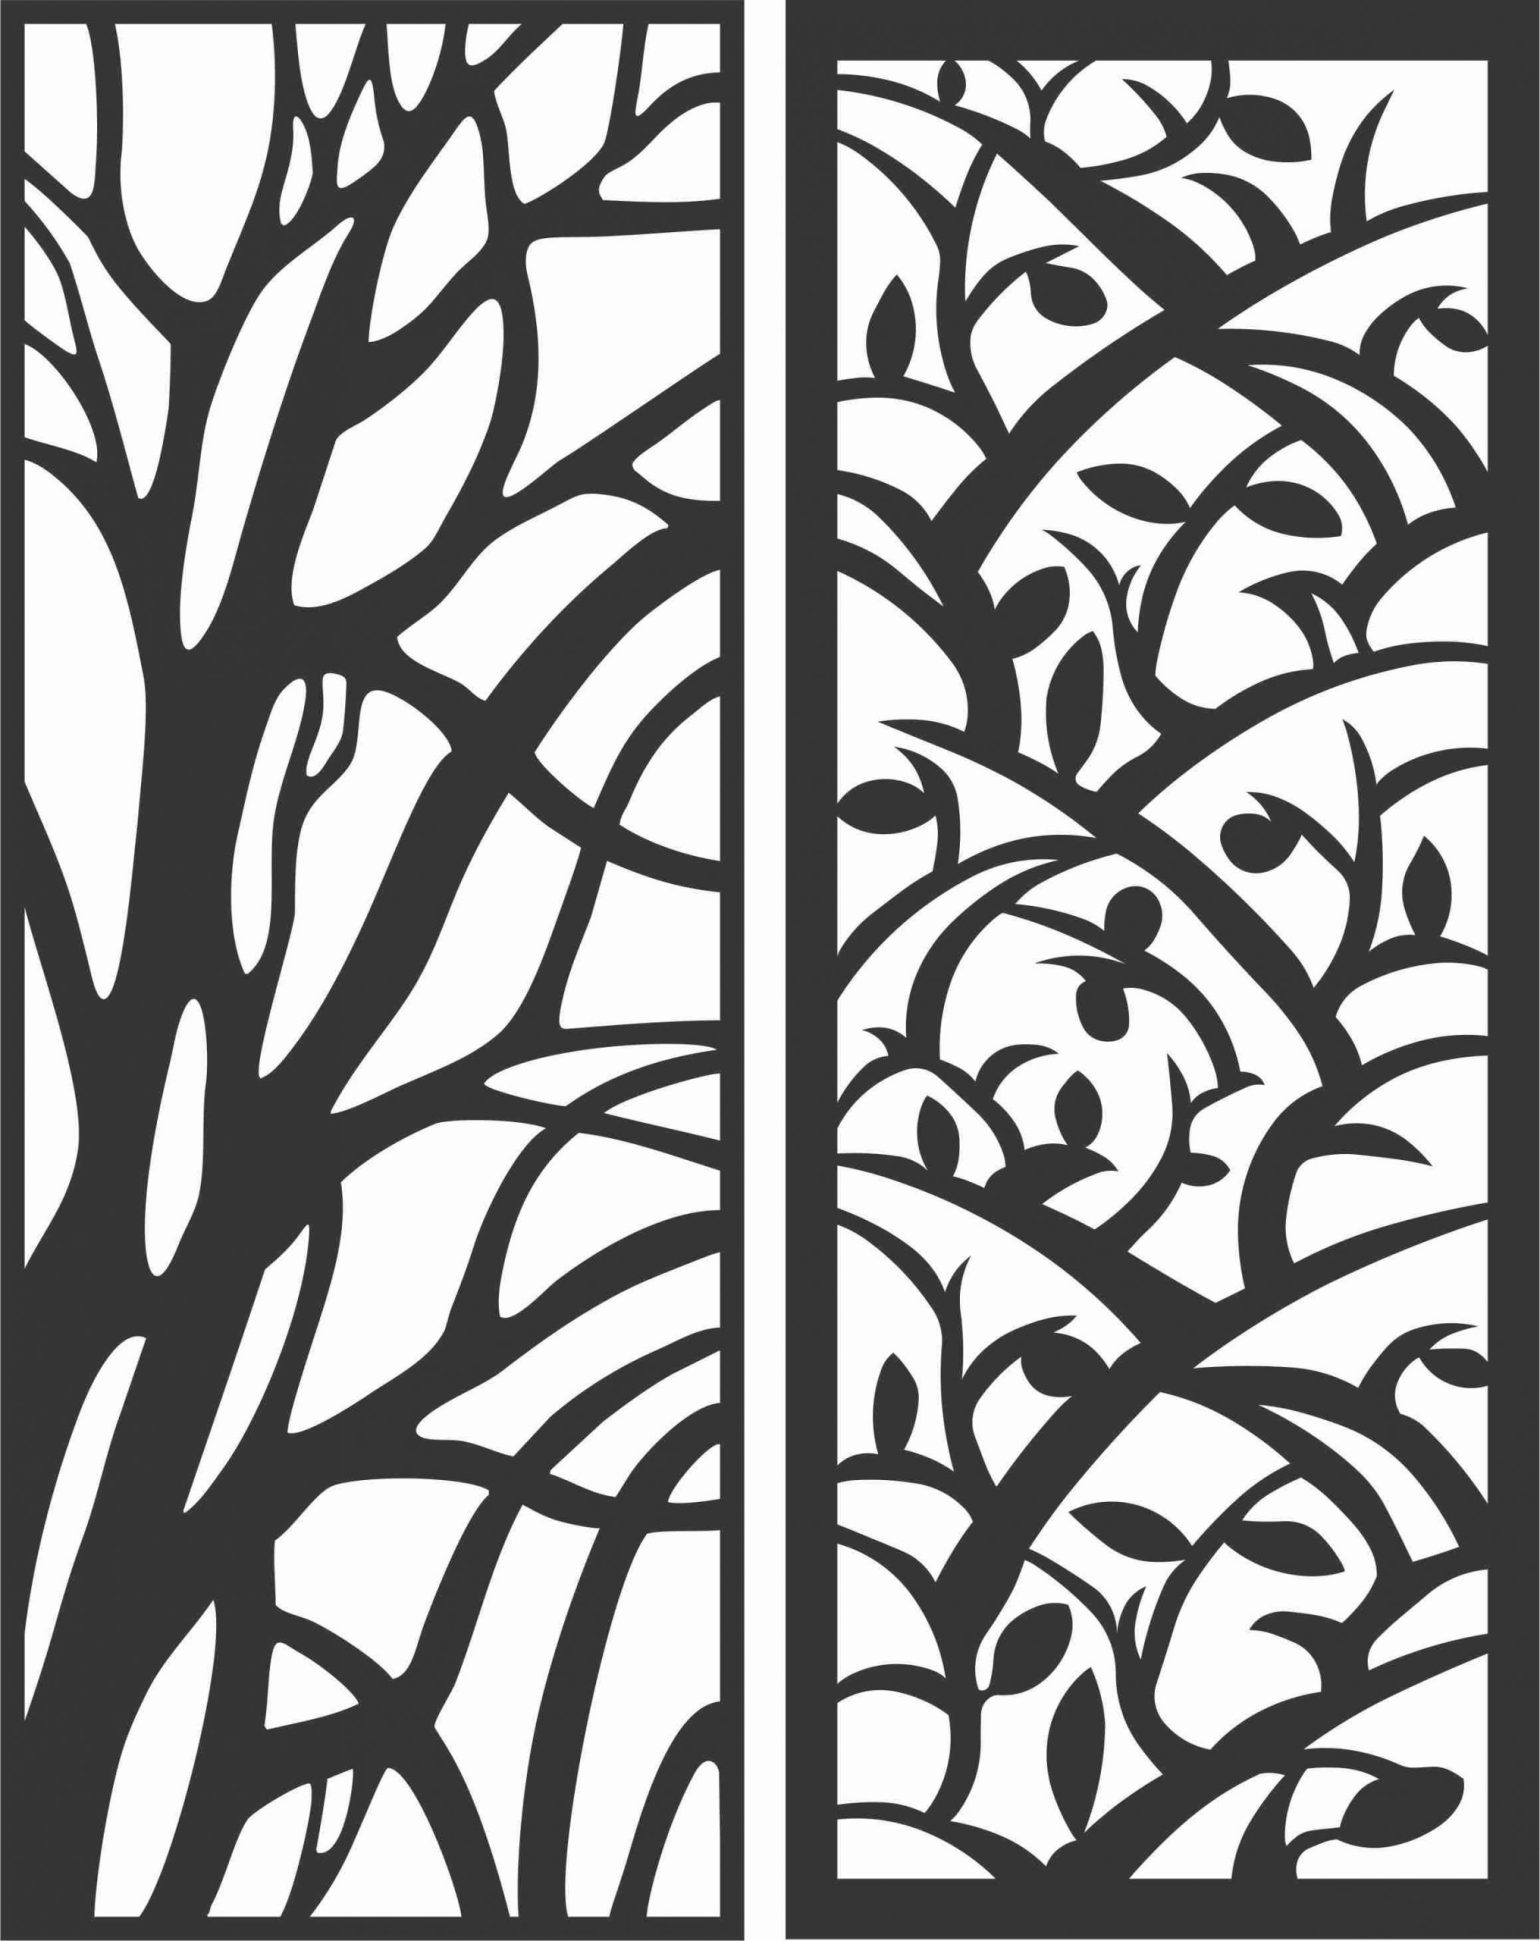 Decorative Screen Patterns For Laser Cutting 62 Free DXF File